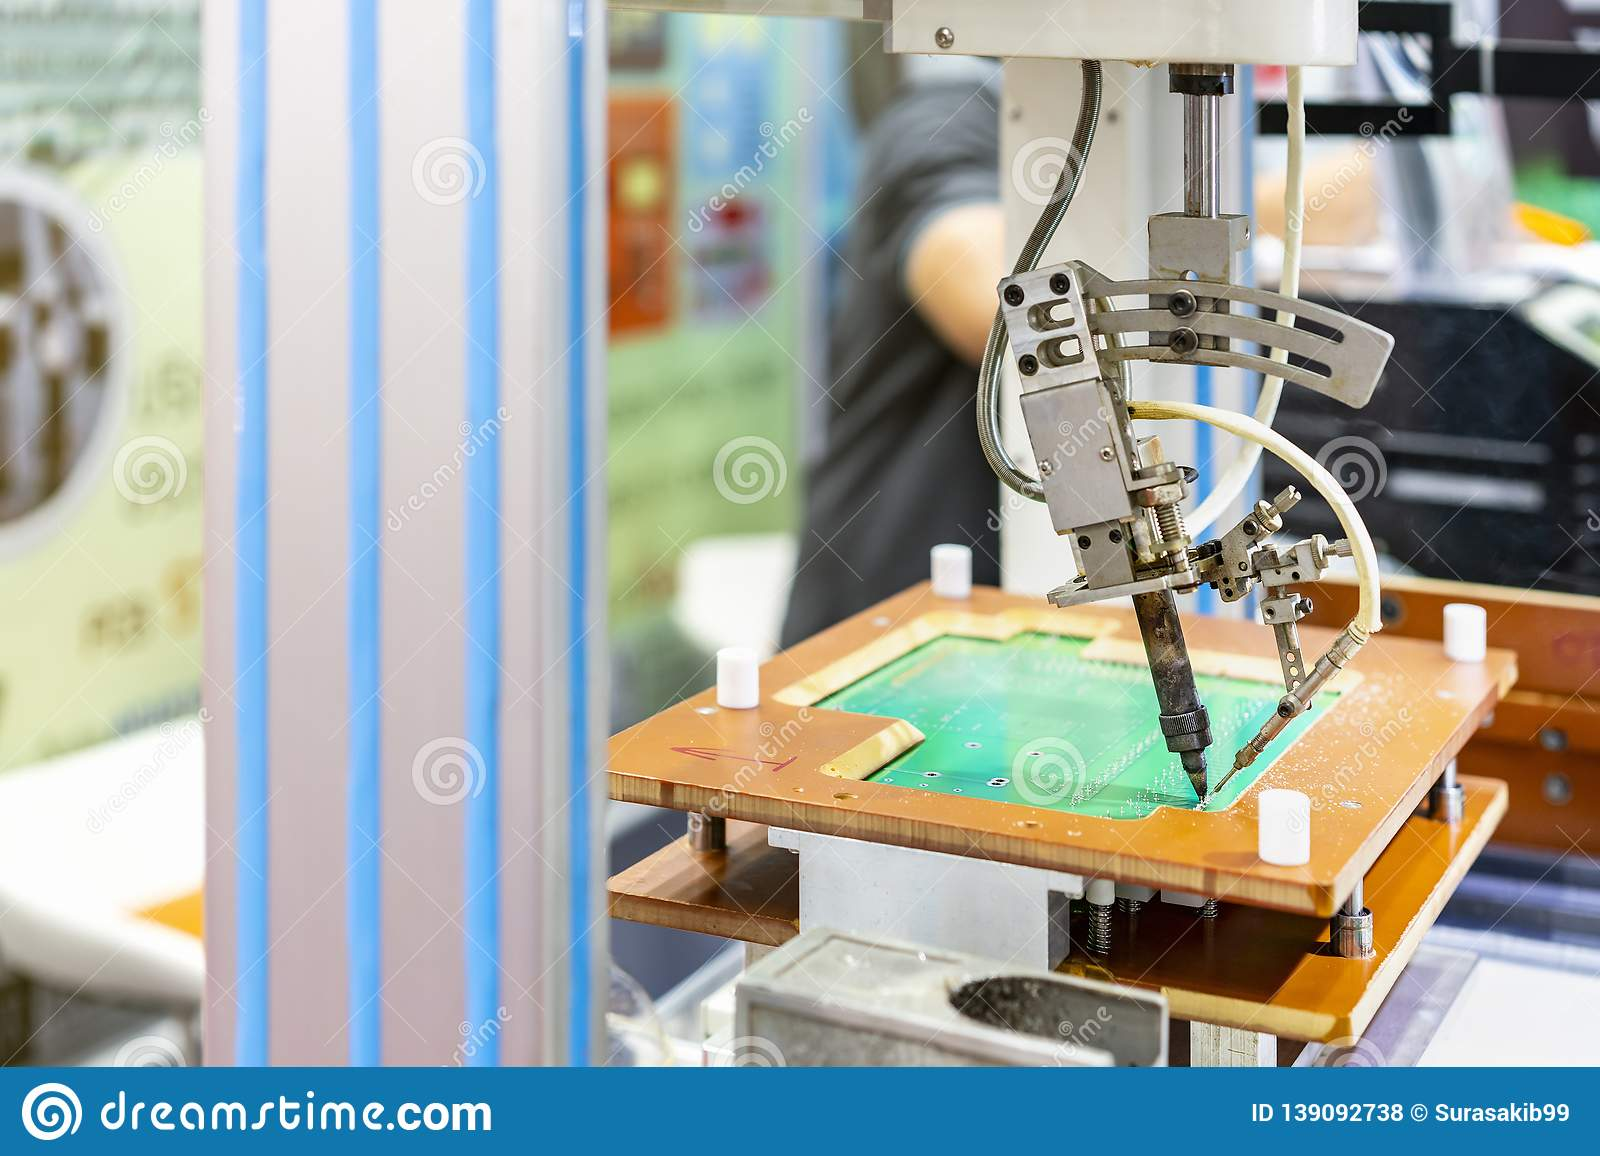 High Technology And Modern Automatic Robot For Pcb Print